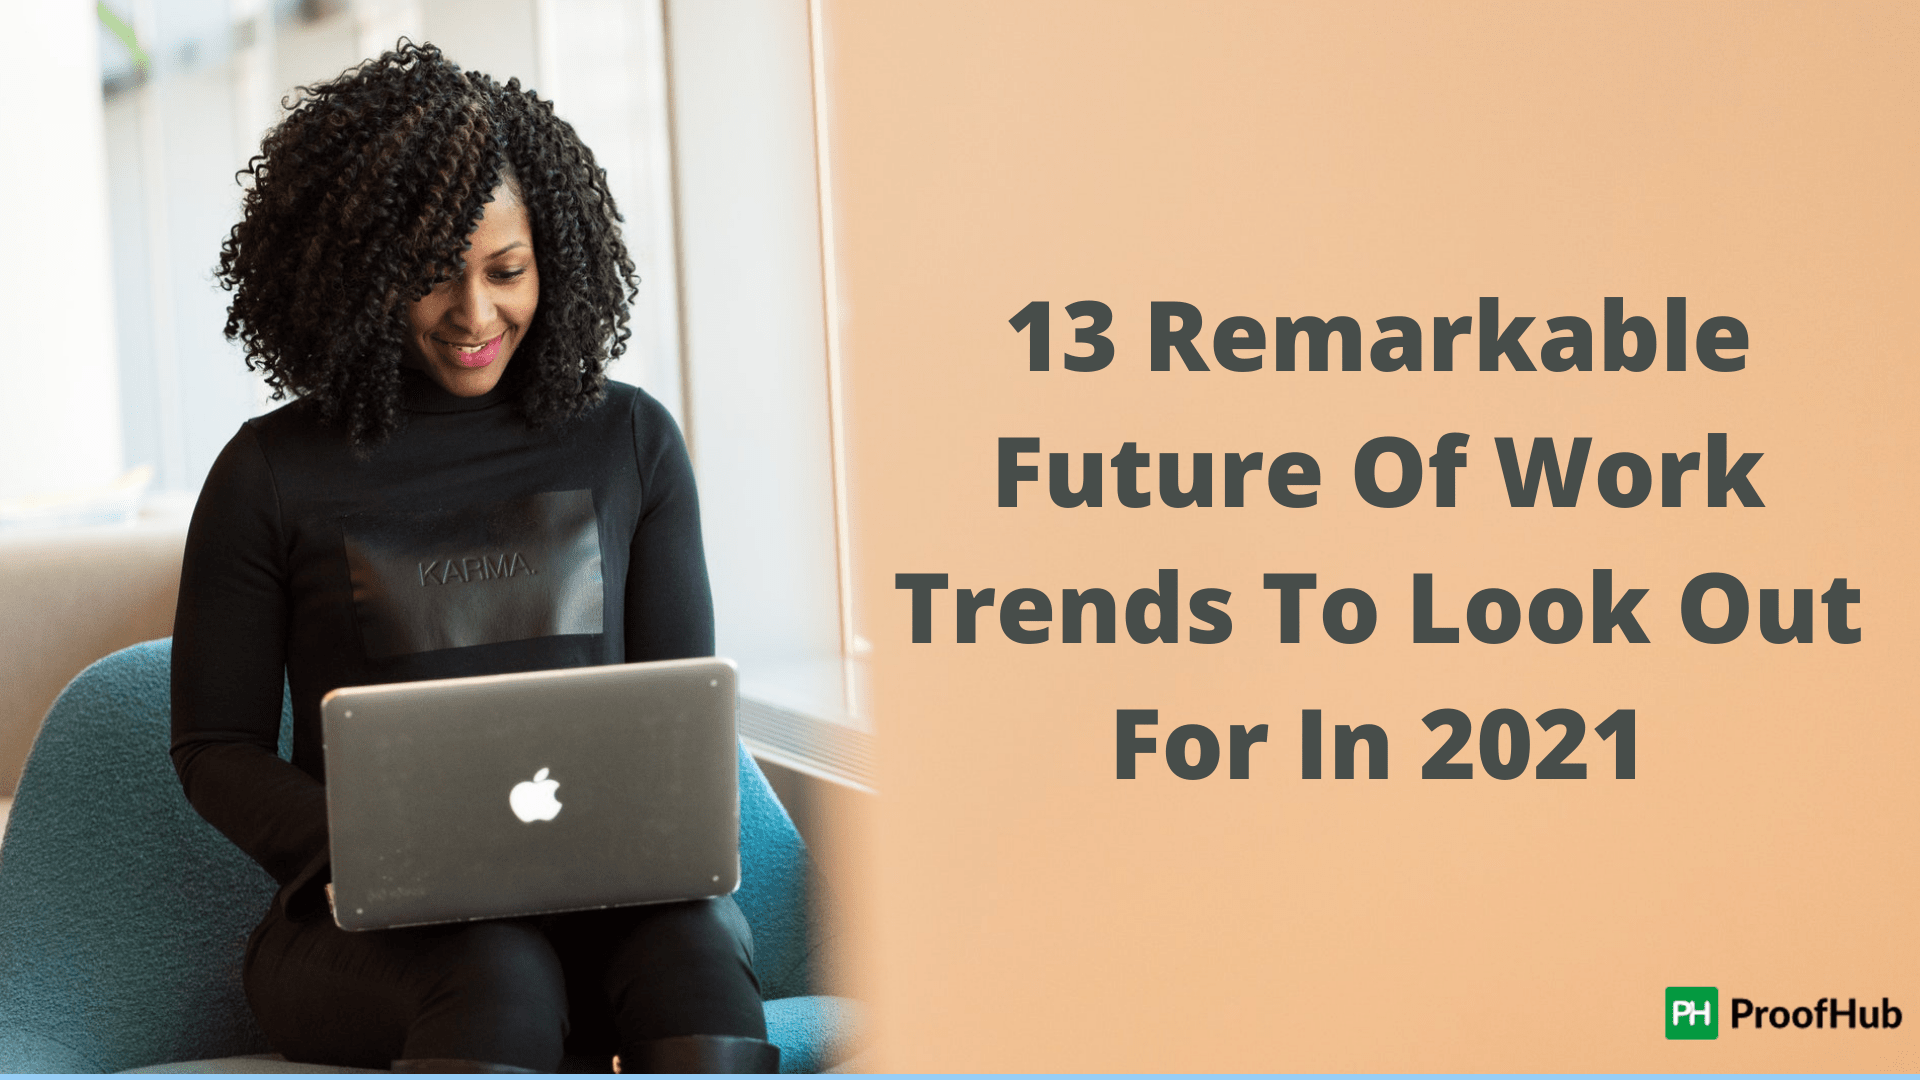 Future Of Work Trends